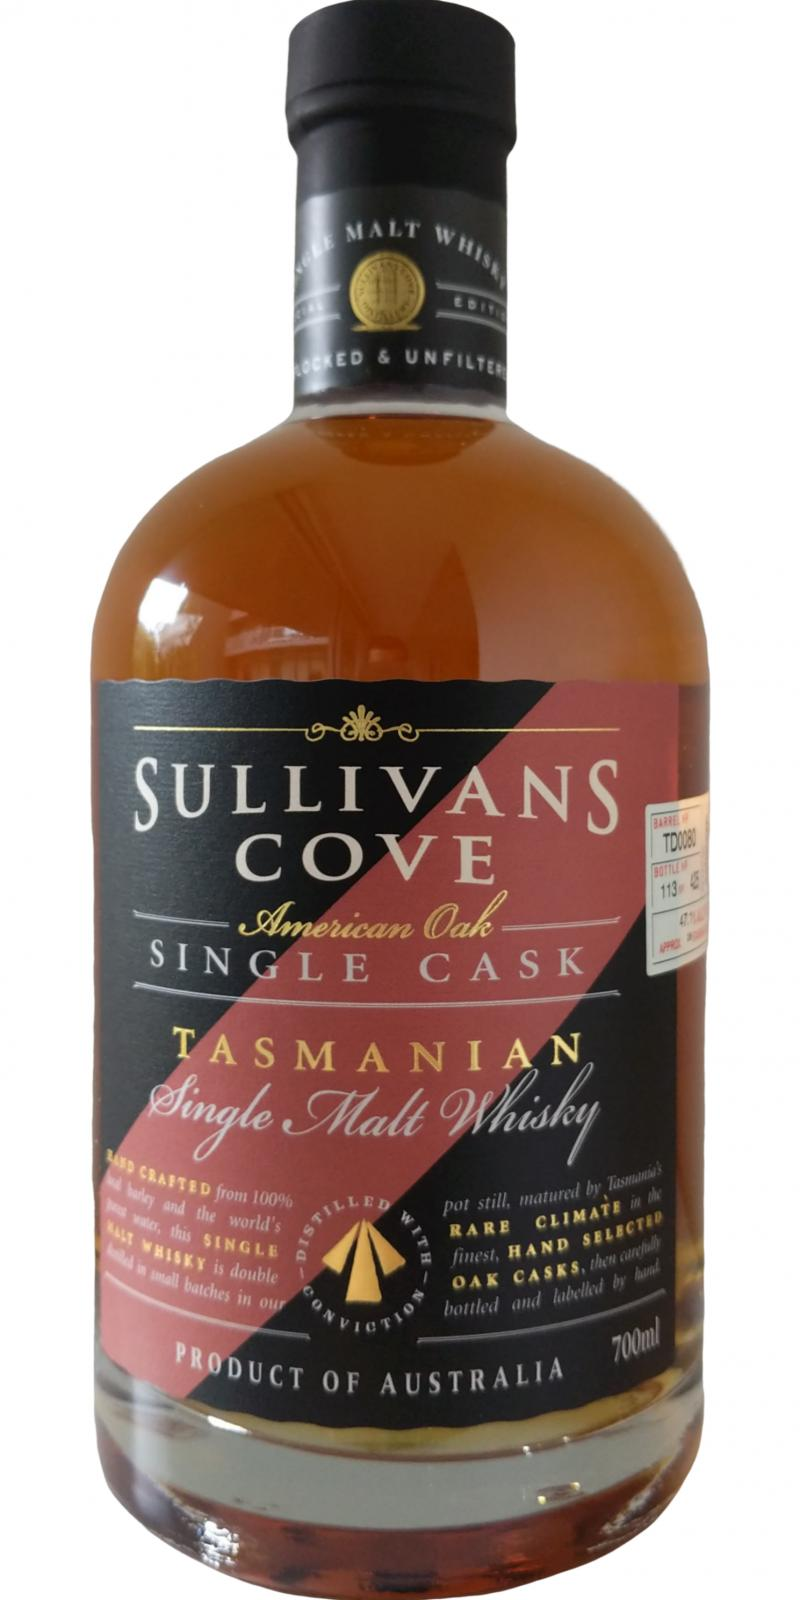 Sullivans Cove 13-year-old